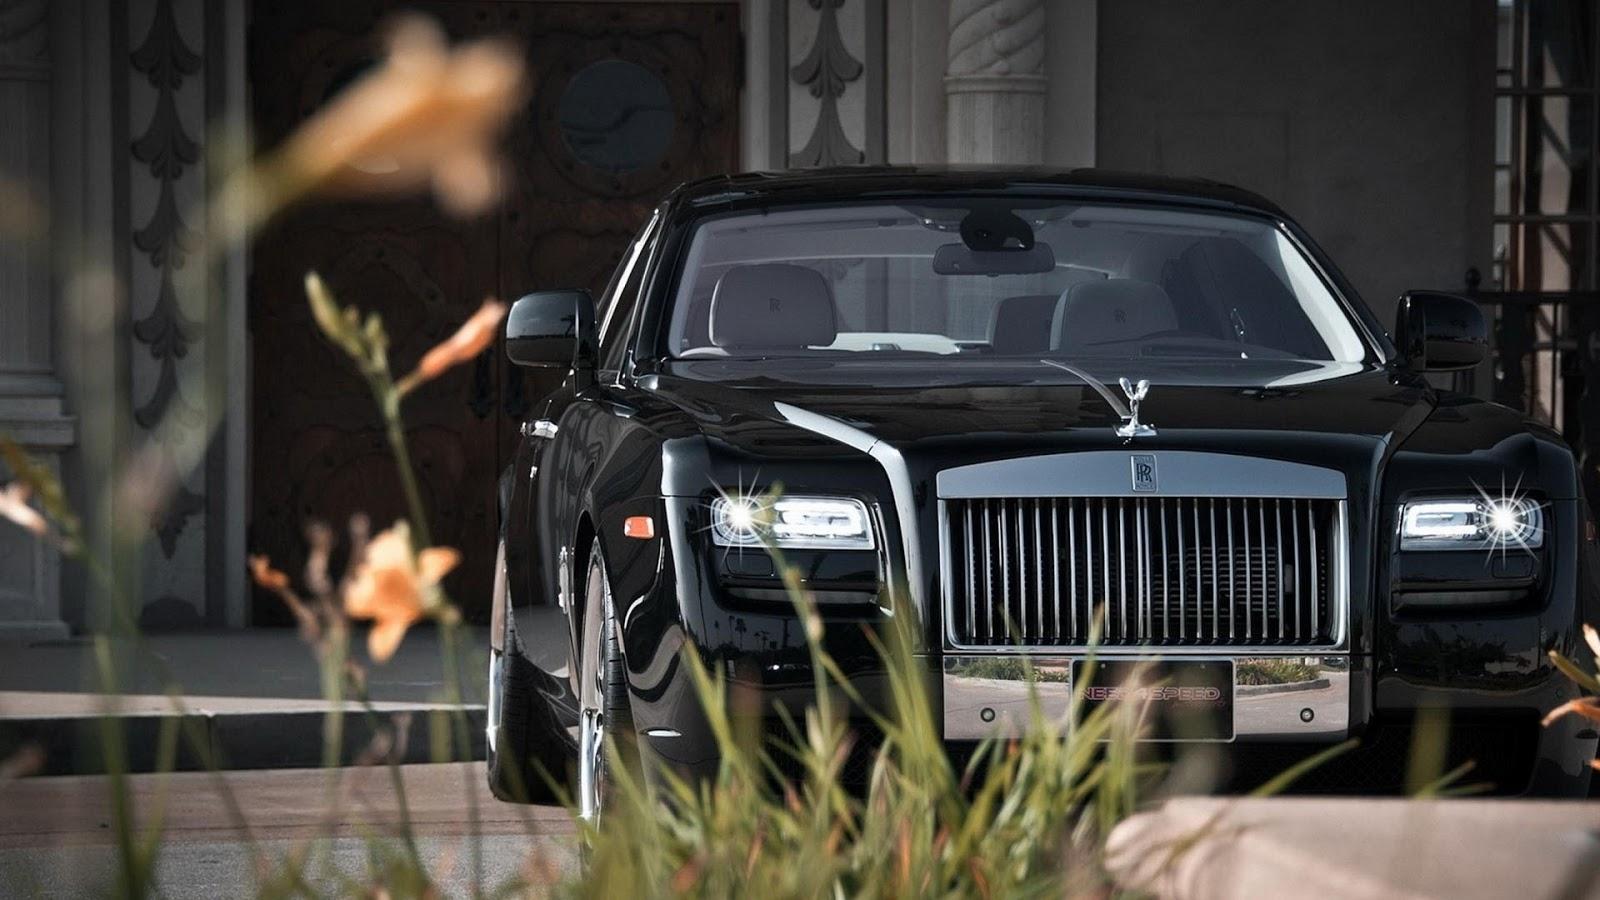 royal cars and bikes wallpapers royals rolls royce. Black Bedroom Furniture Sets. Home Design Ideas